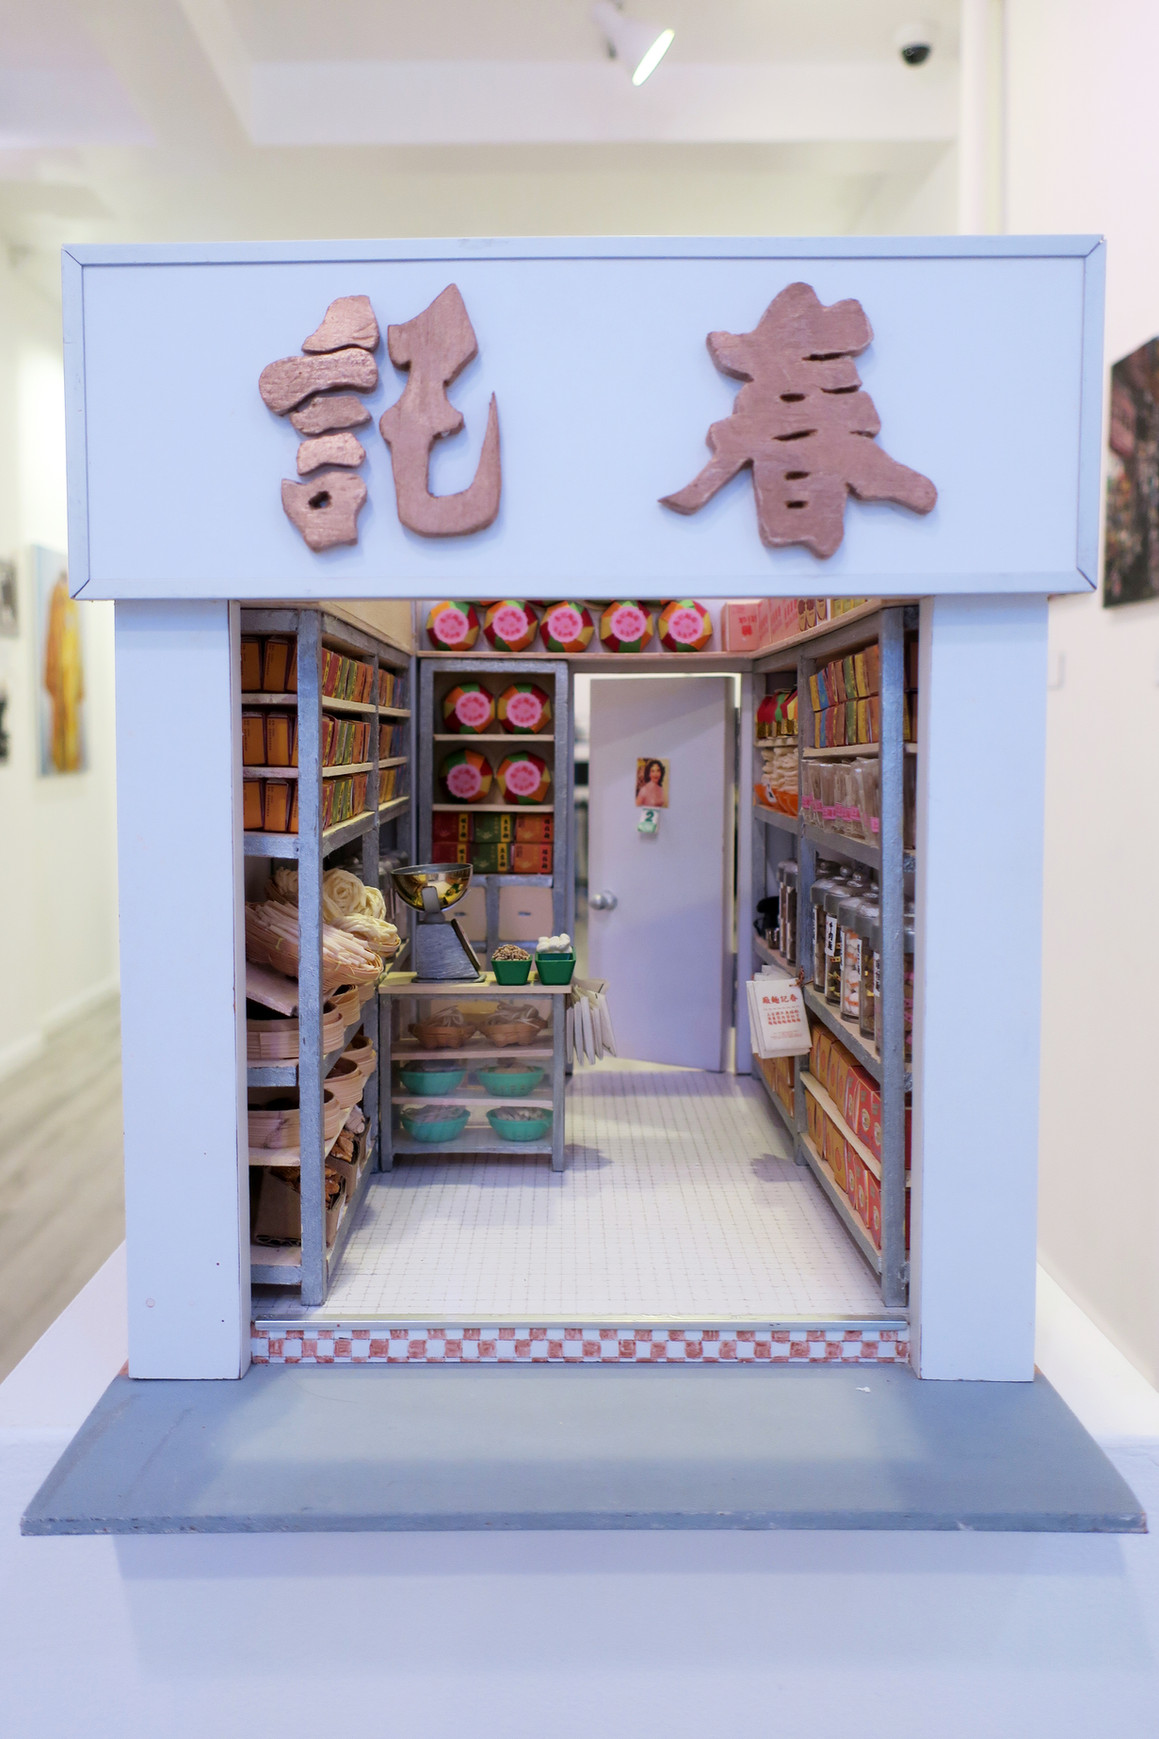 This is a miniature of a Hong Kong local shop, Chun Kee Noodle Factory, made by Vicky Fan.